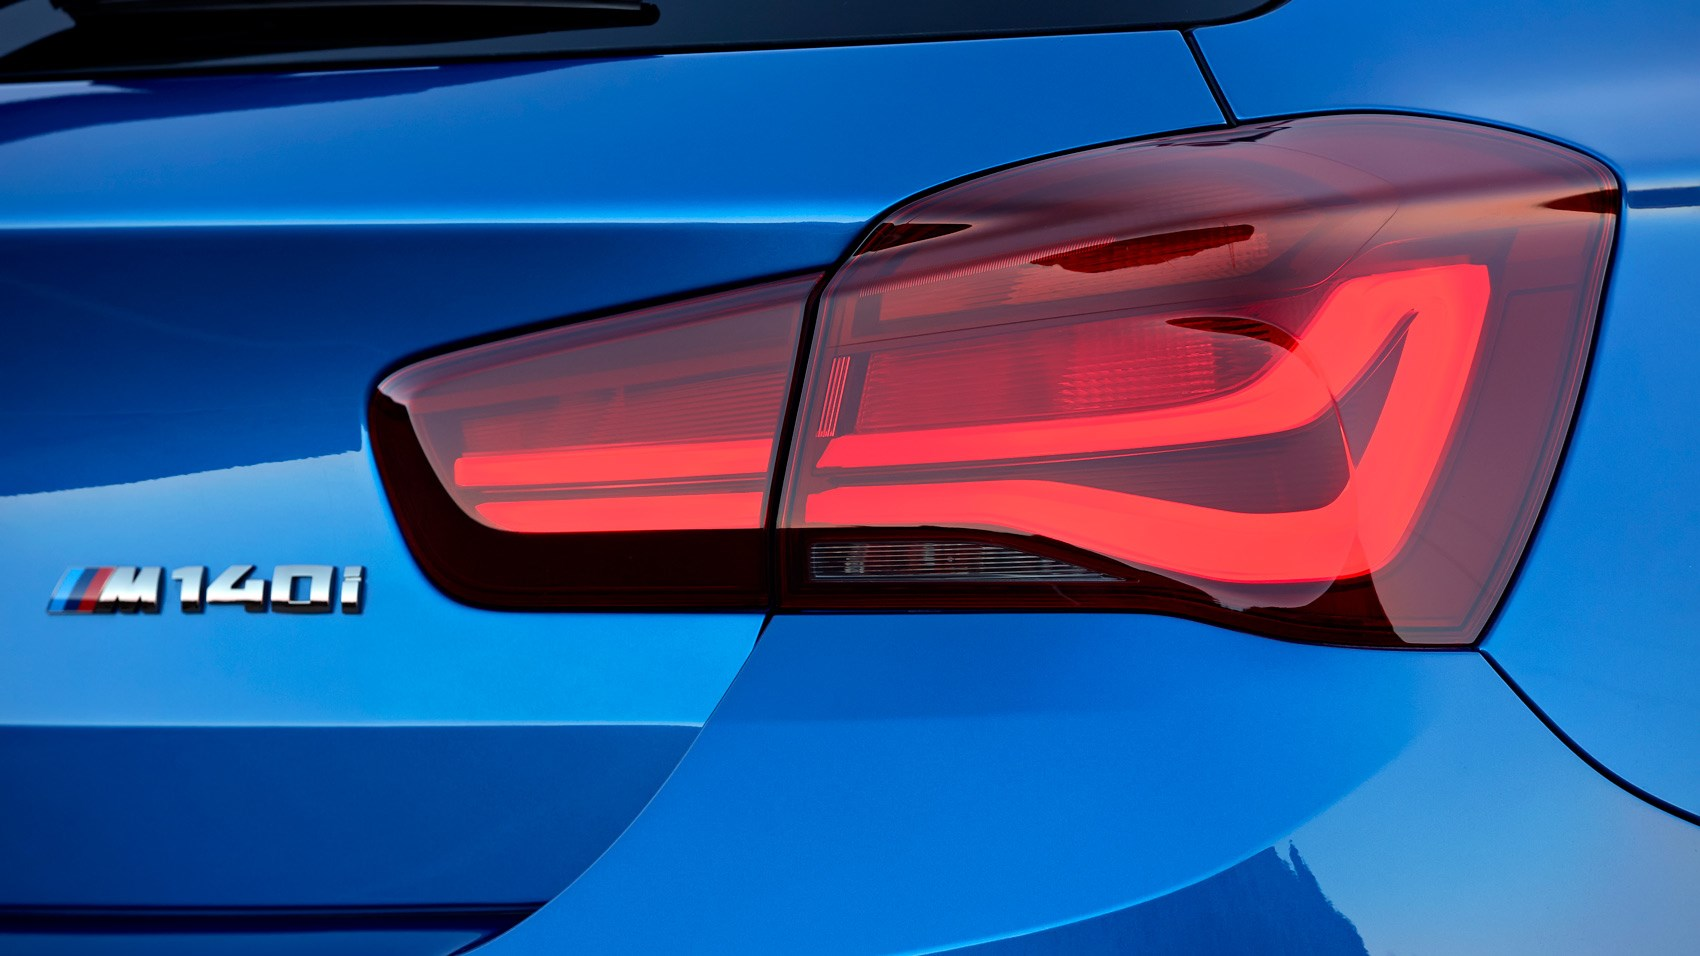 BMW M140i rear badge